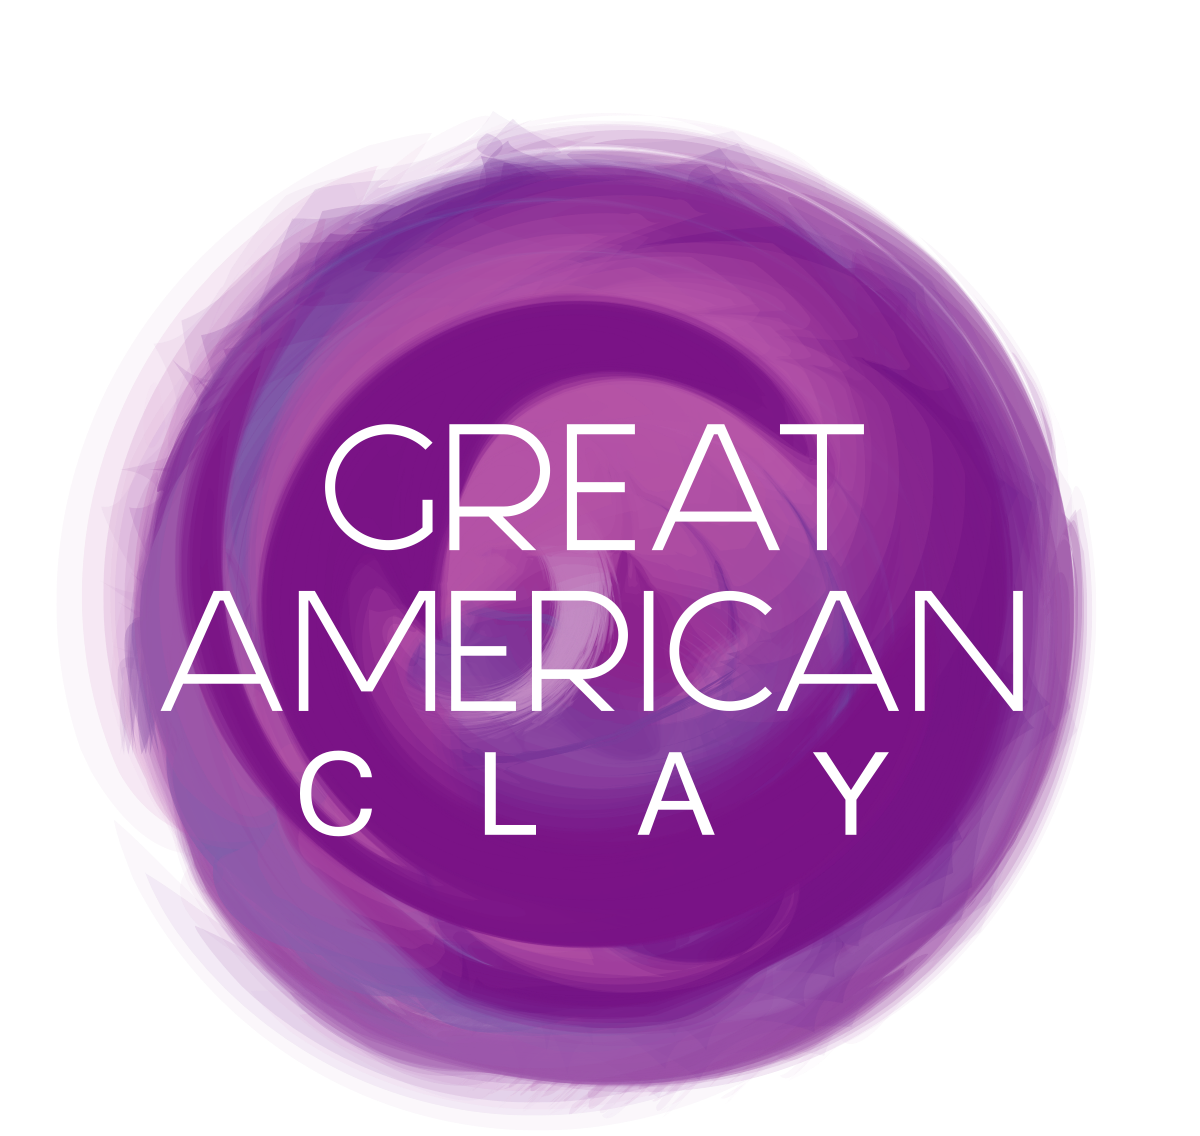 Great American Clay is our first brand. We have 4 more pending...Colorful and clean for beauty!